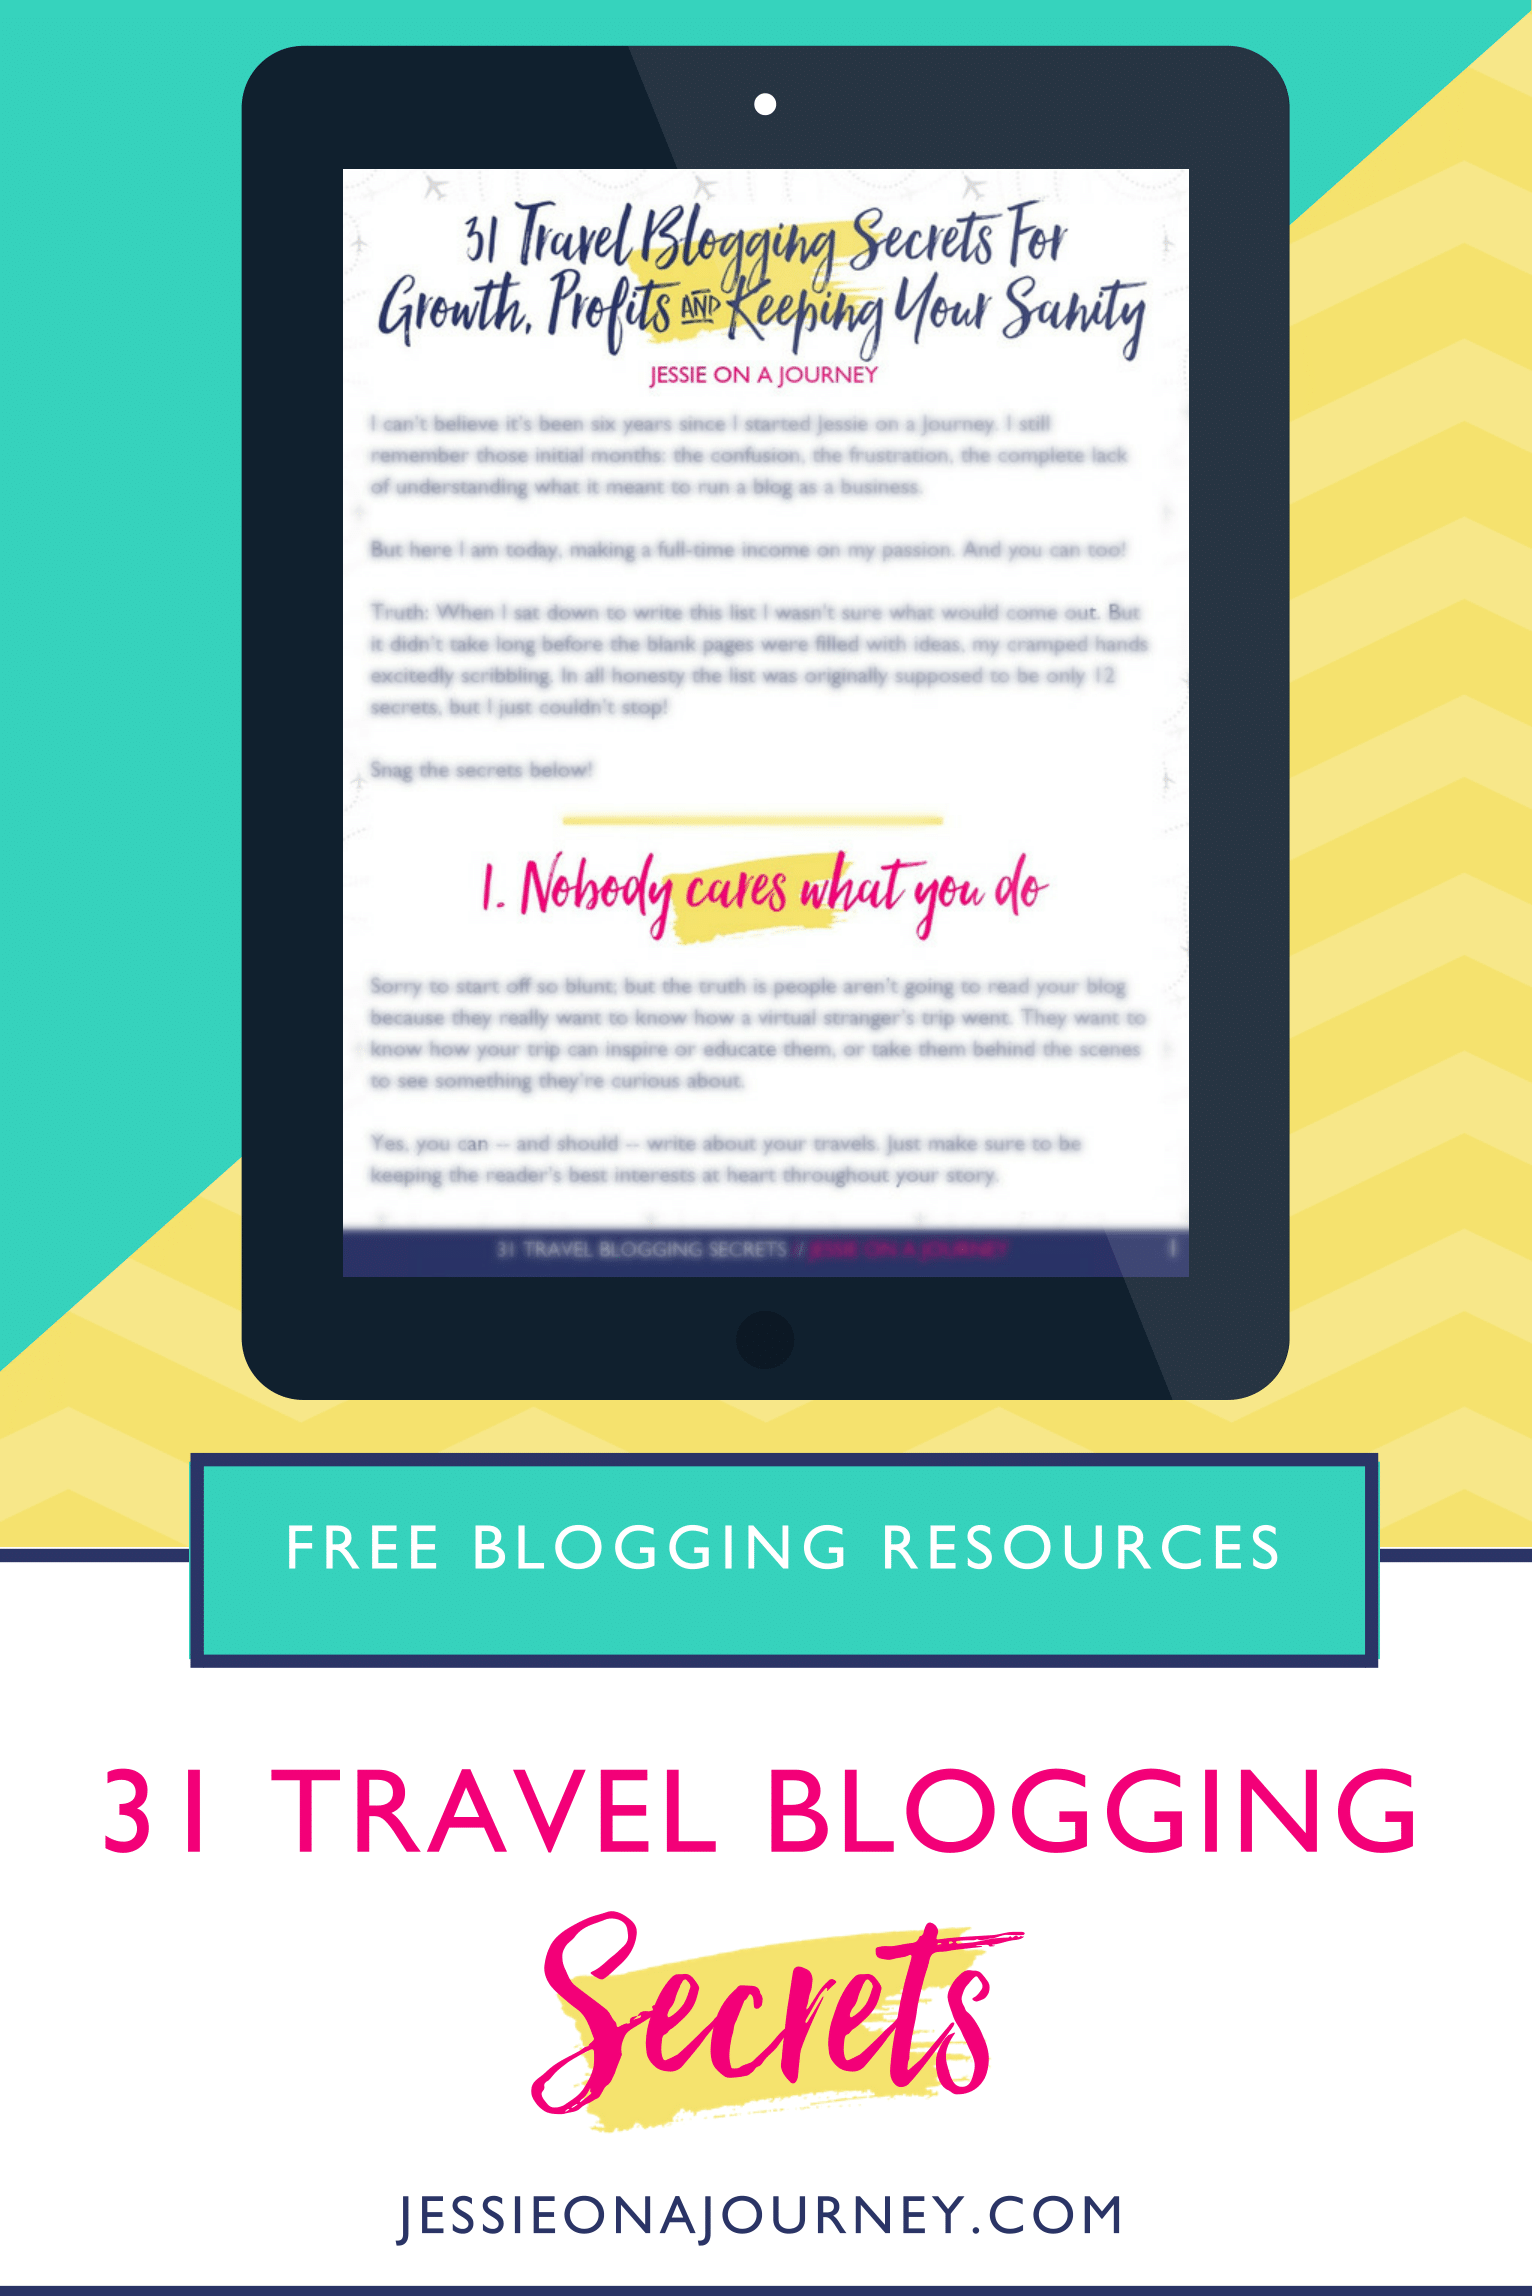 How To Be A Travel Blogger And Get Free Stuff